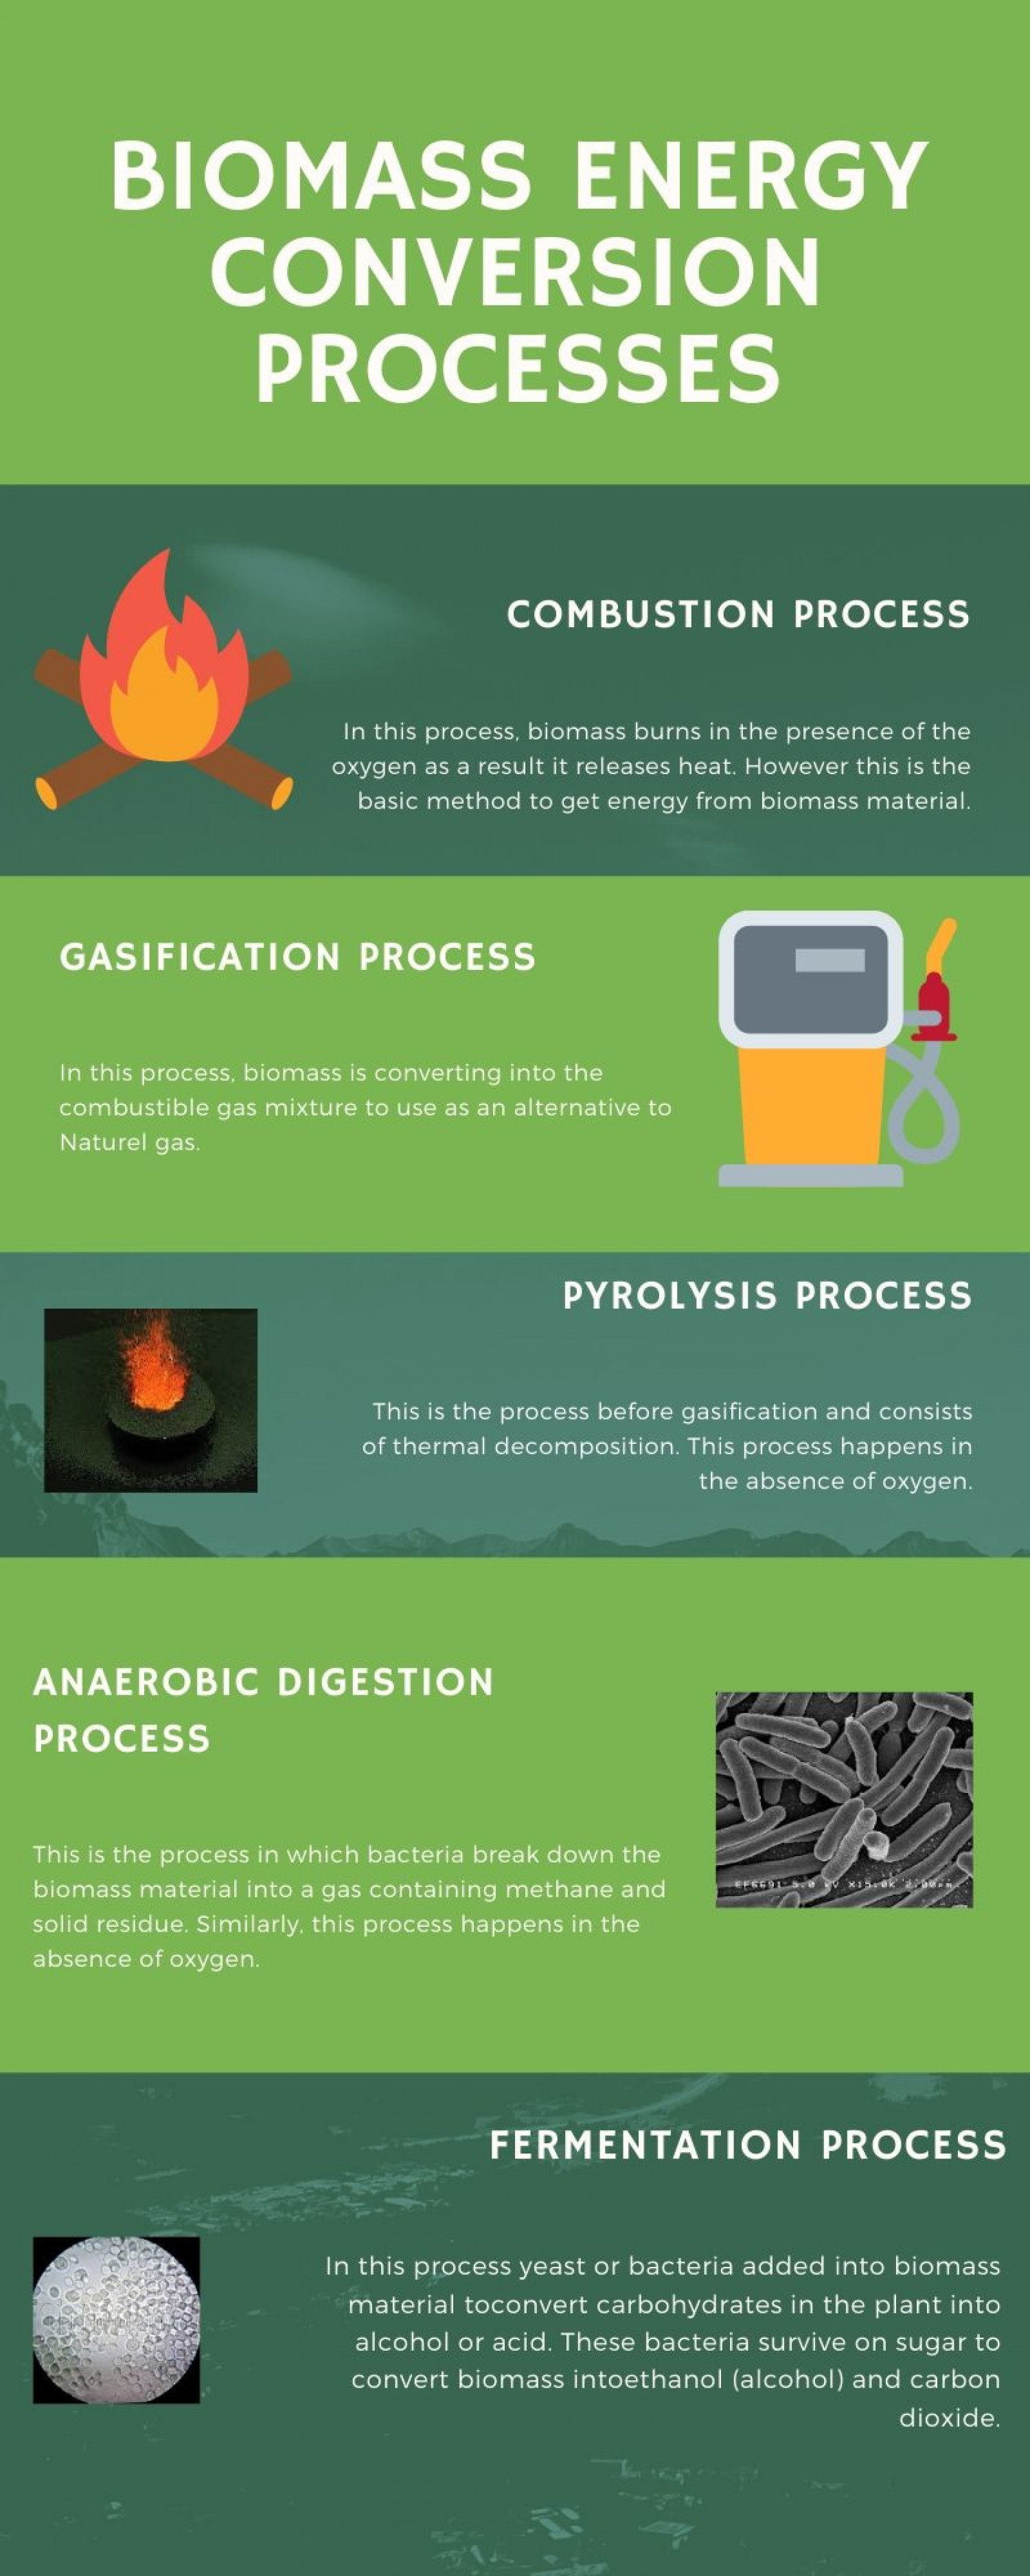 Biomass energy conversion processes Infographic